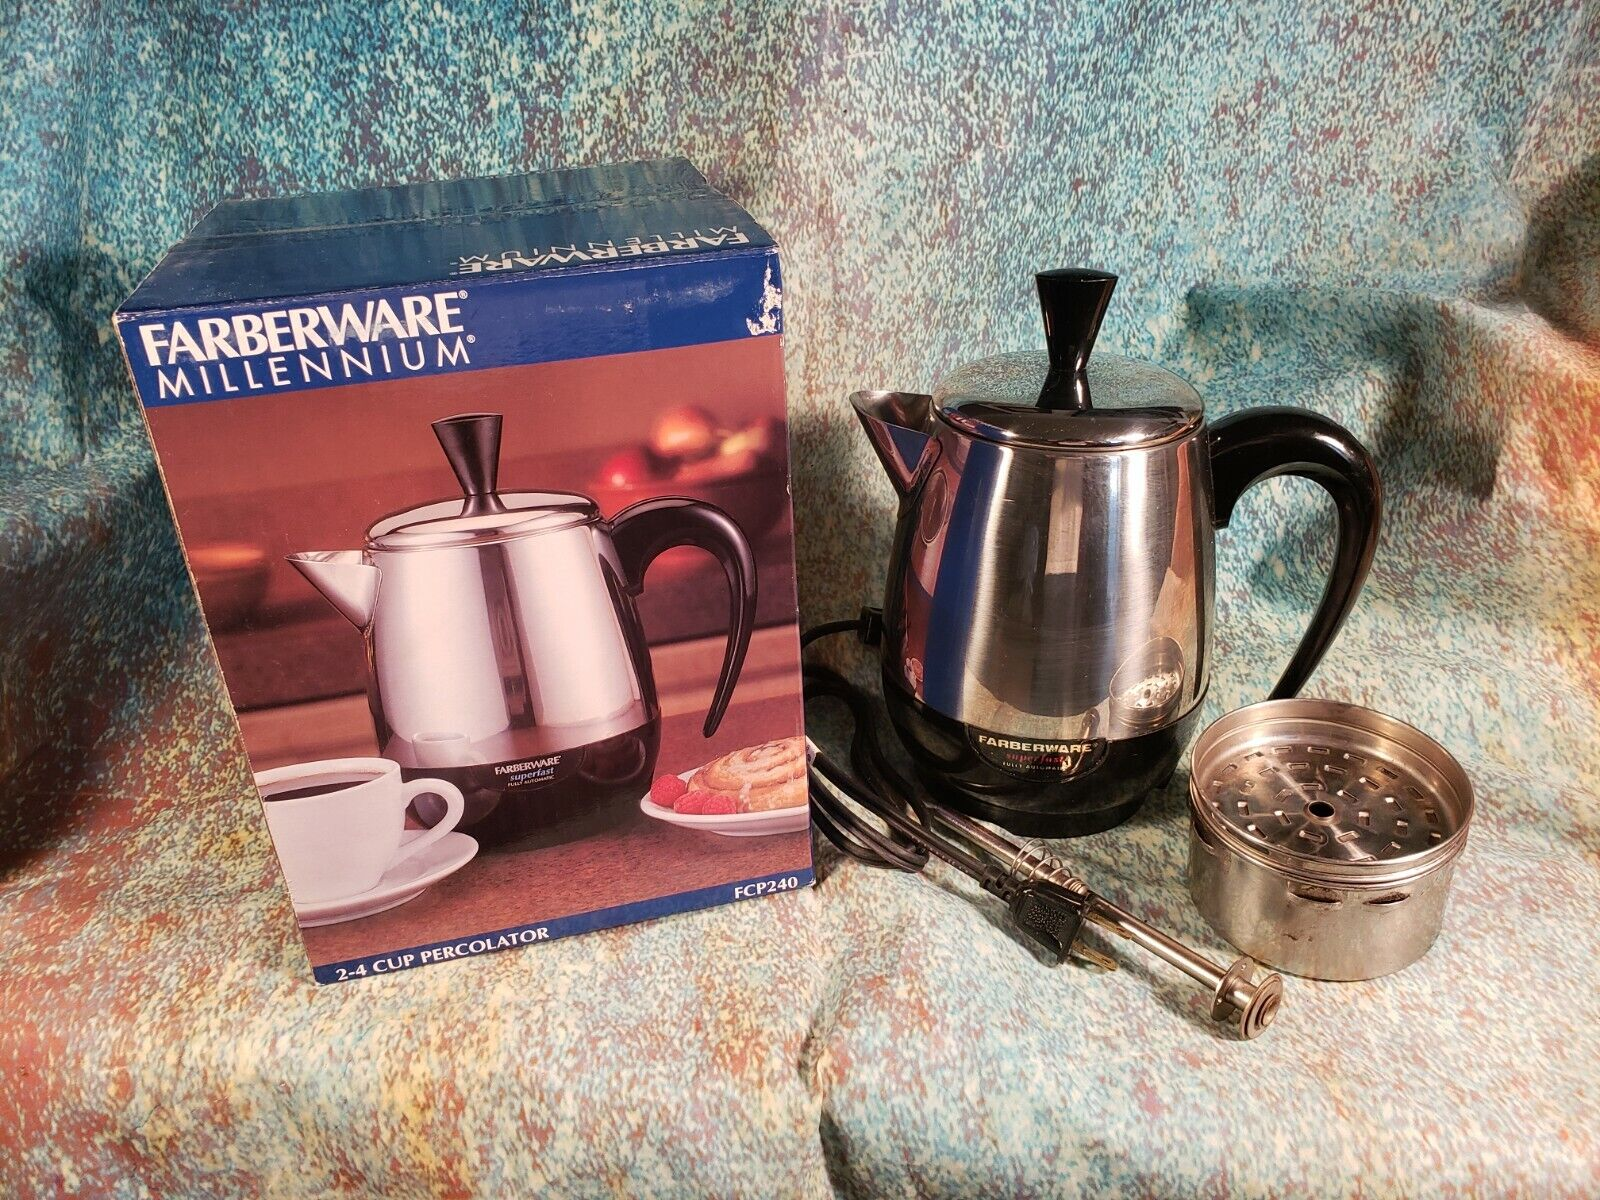 Farberware Superfast 2-4 Cup Stainless Steel Percolator Coff